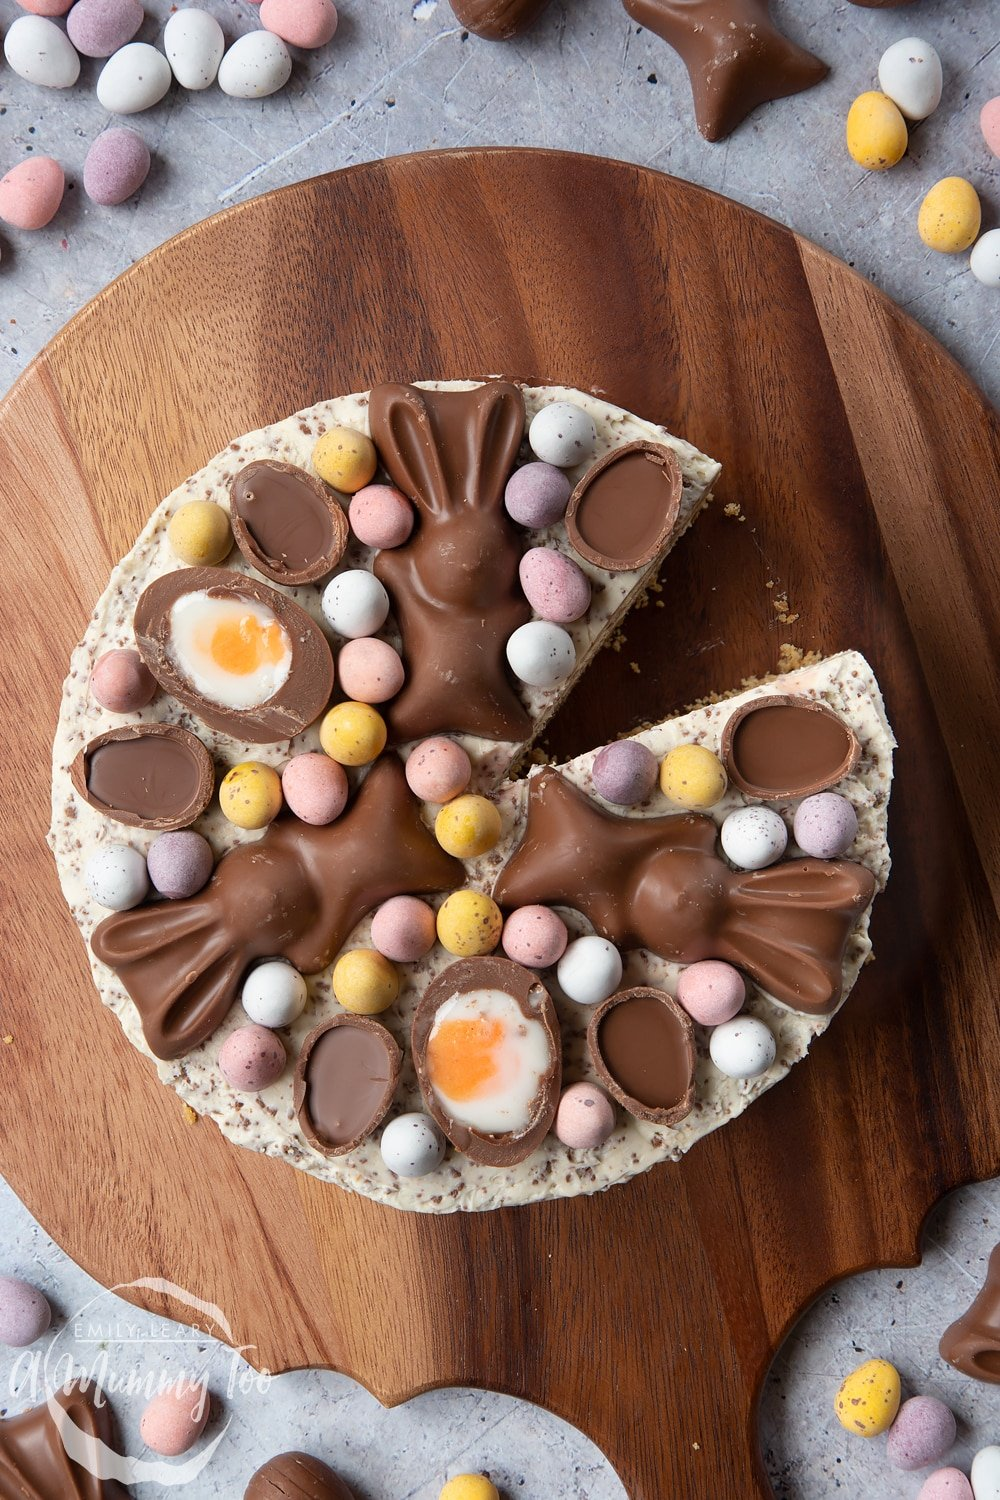 No-bake Easter cheesecake shown from above. The cheesecake is topped with mini chocolate eggs, creme eggs and chocolate bunnies. The cheesecake sits on a wooden board and has a slice taken from it.